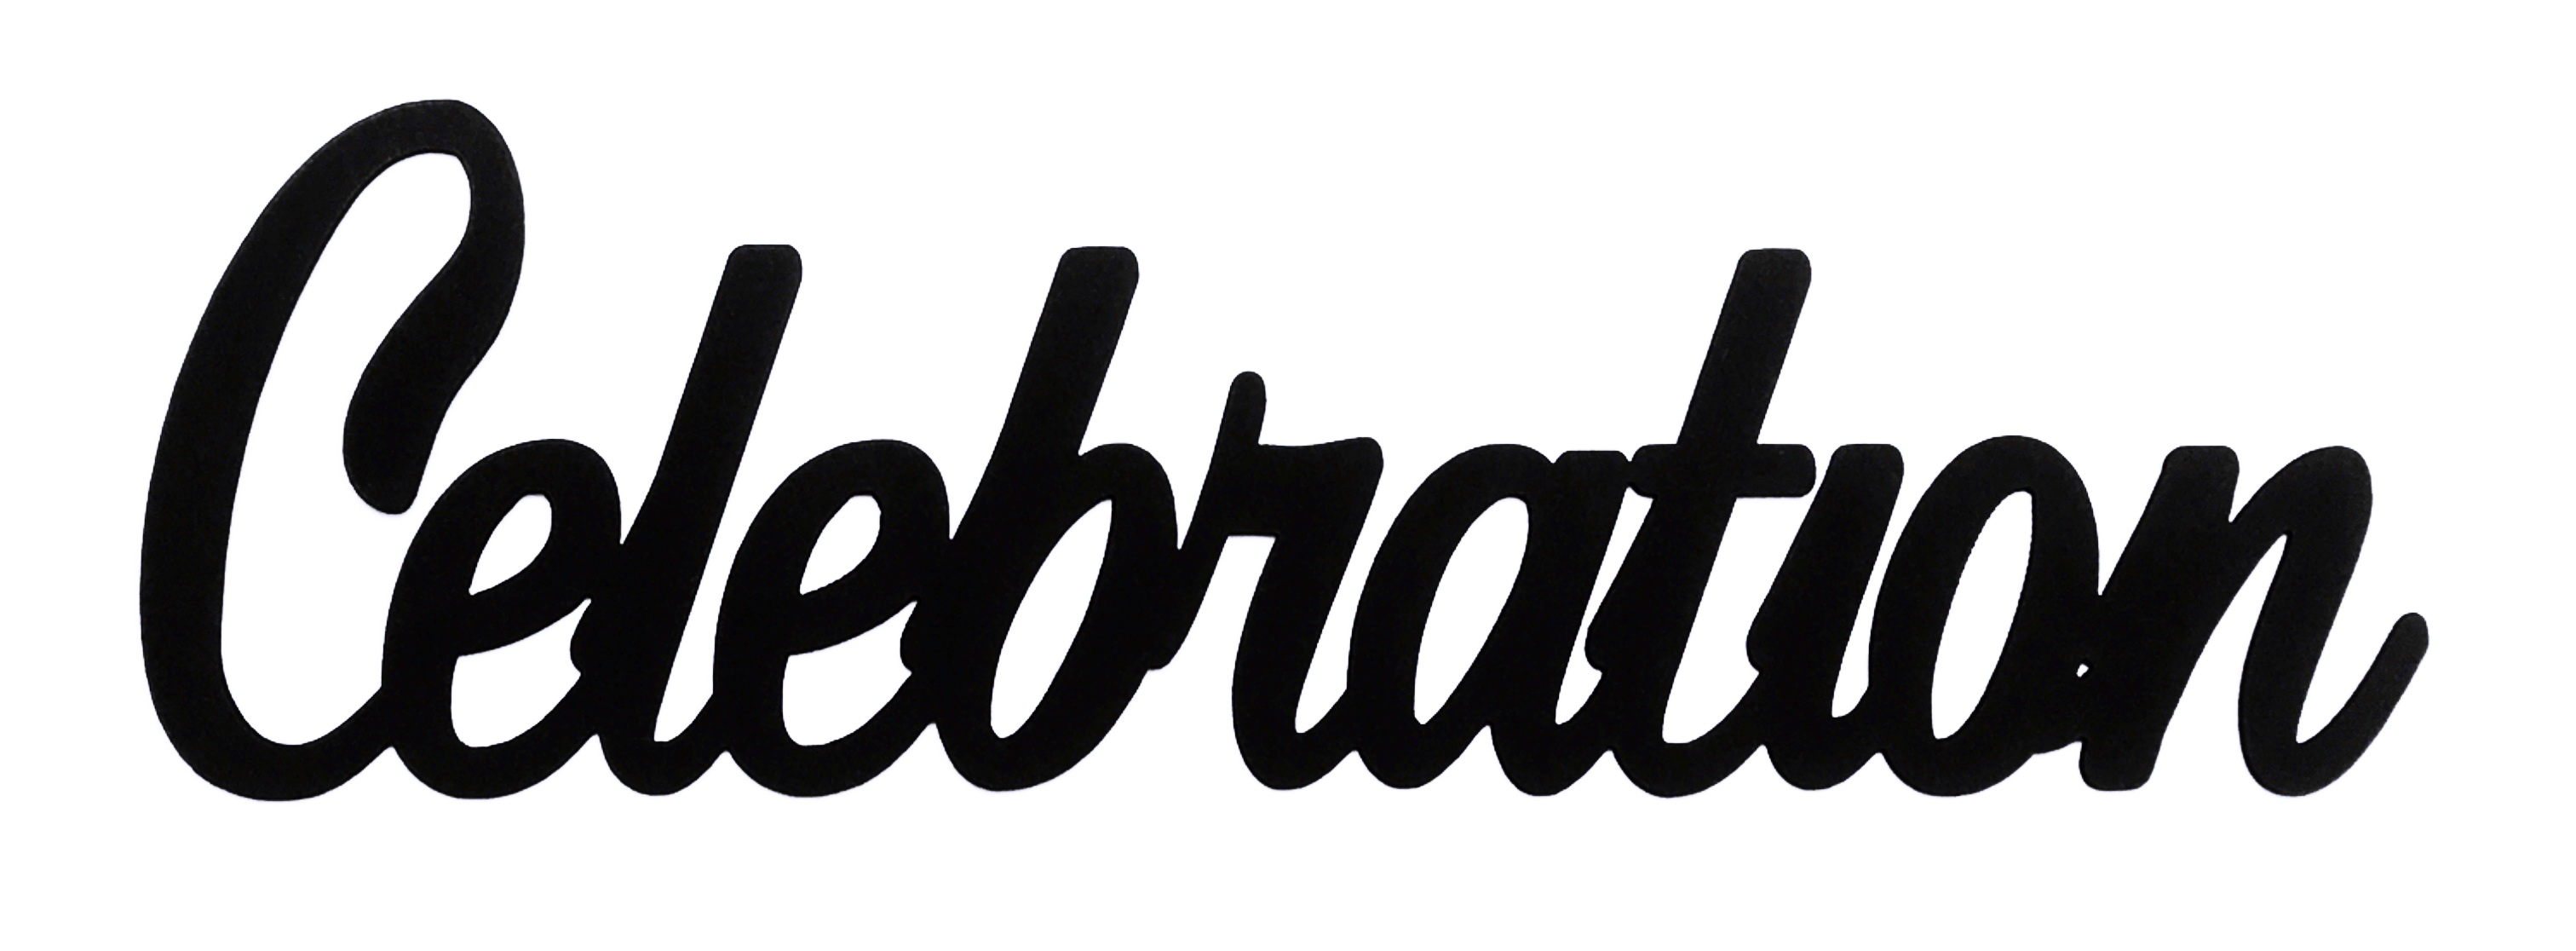 Celebration Scrapbooking Laser Cut Title